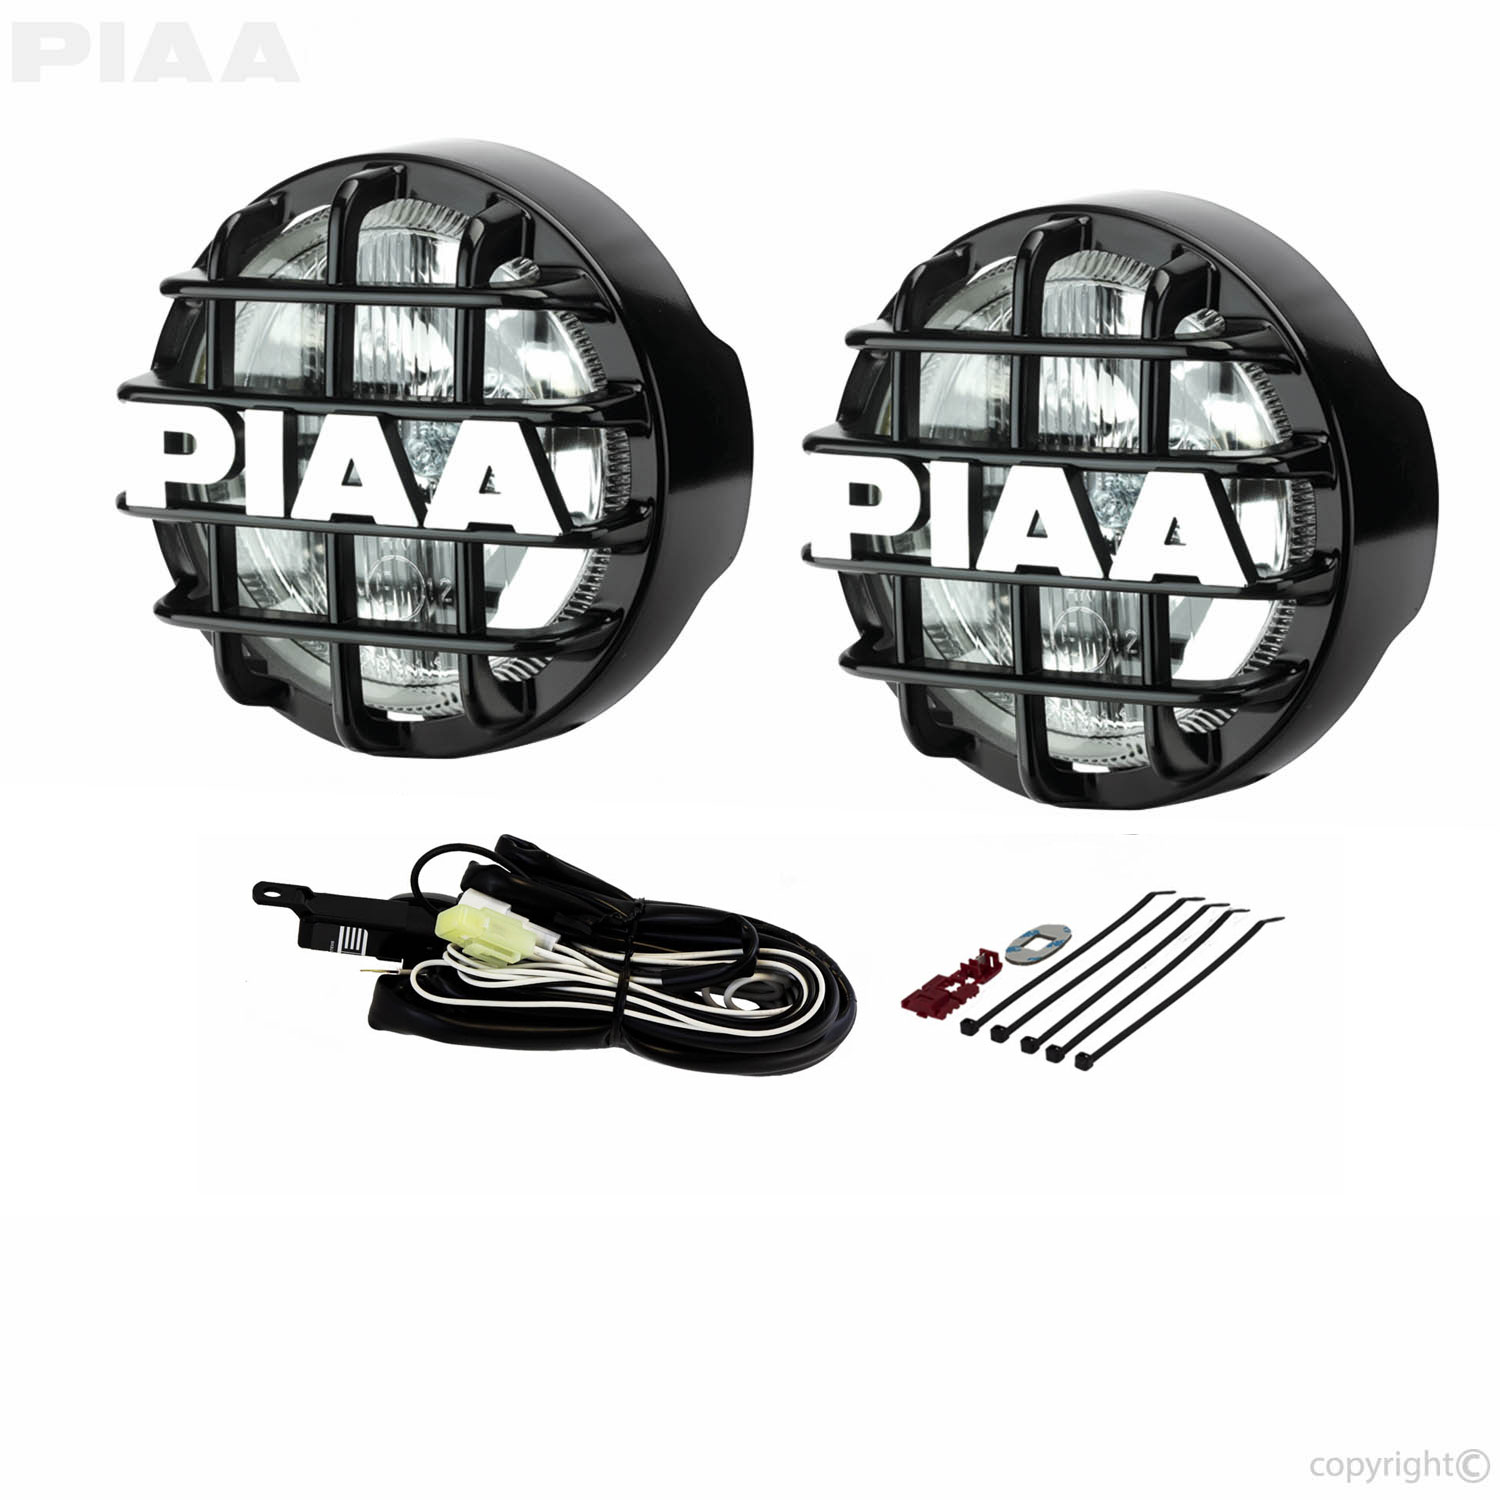 Piaa Wiring Harness 55 Watt Free Diagram For You Universal Kit 510 Super White Driving Lamp 05164 Rh Com Scosche Fog Light